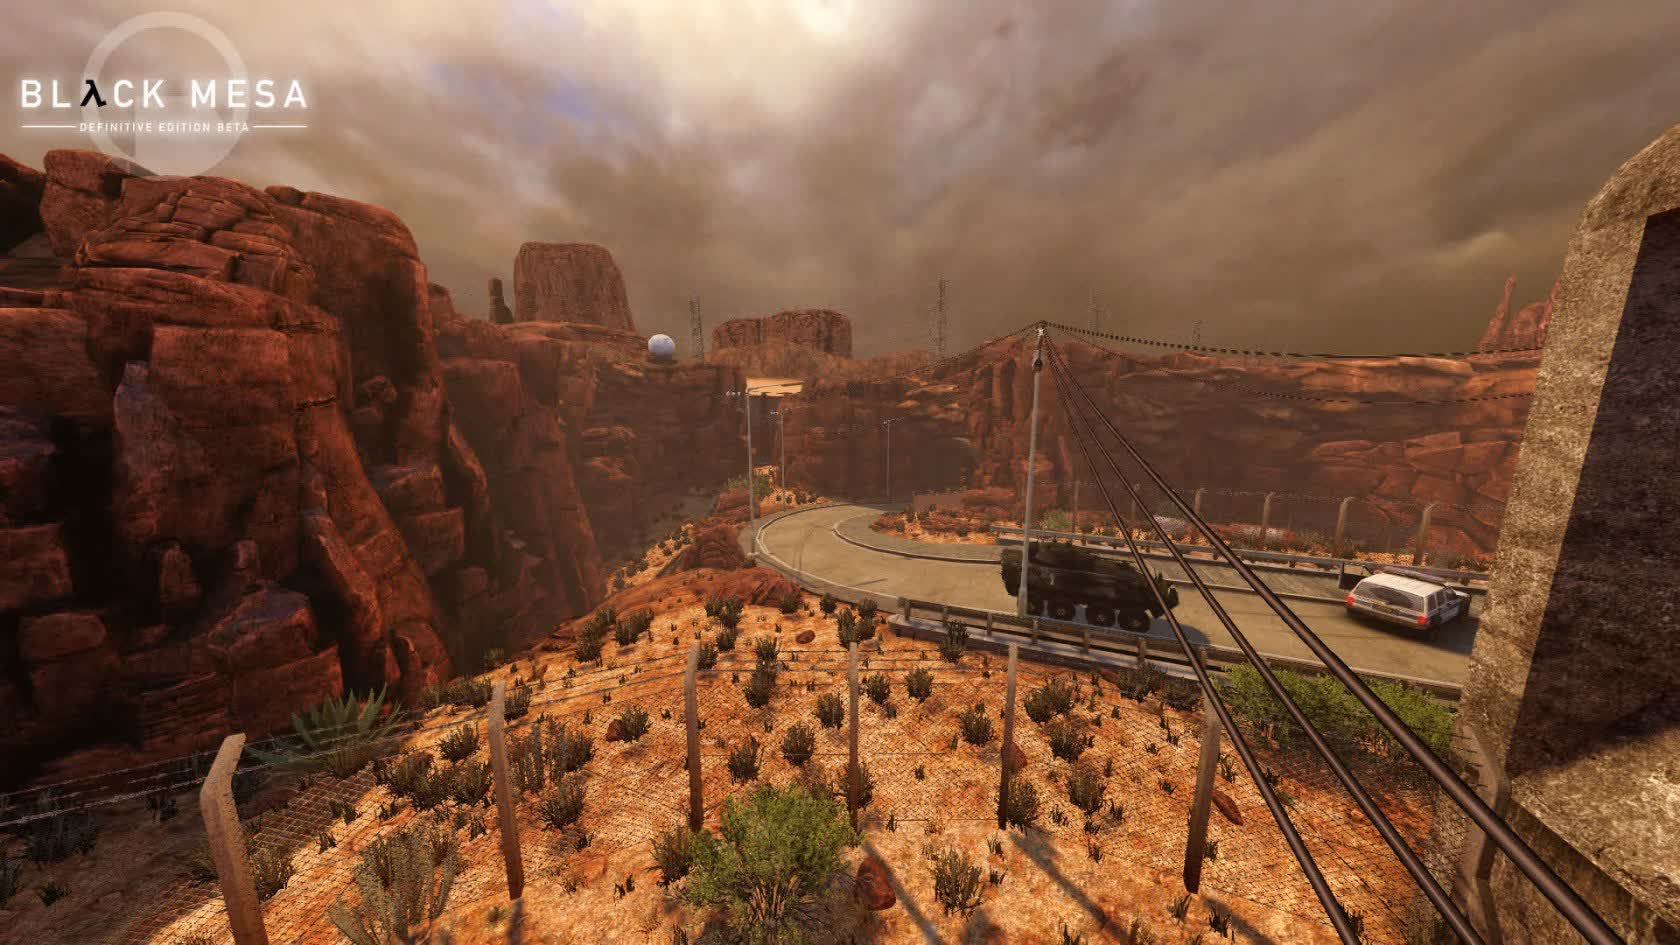 Half-Life's third-party remake, Black Mesa, is getting its own Definitive Edition